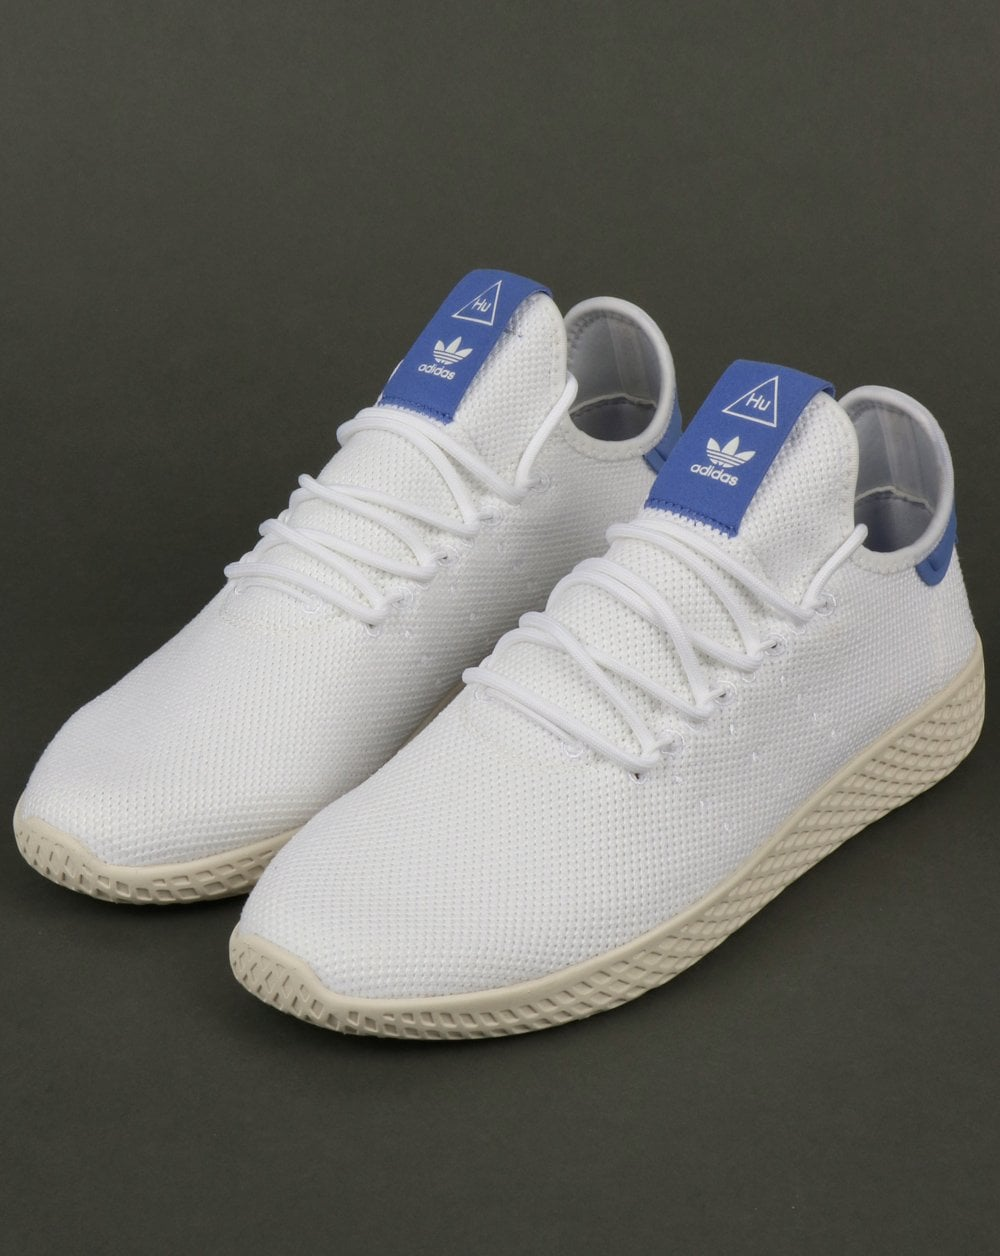 a06b27e01 adidas Trainers Adidas PW Tennis HU Trainers White Blue